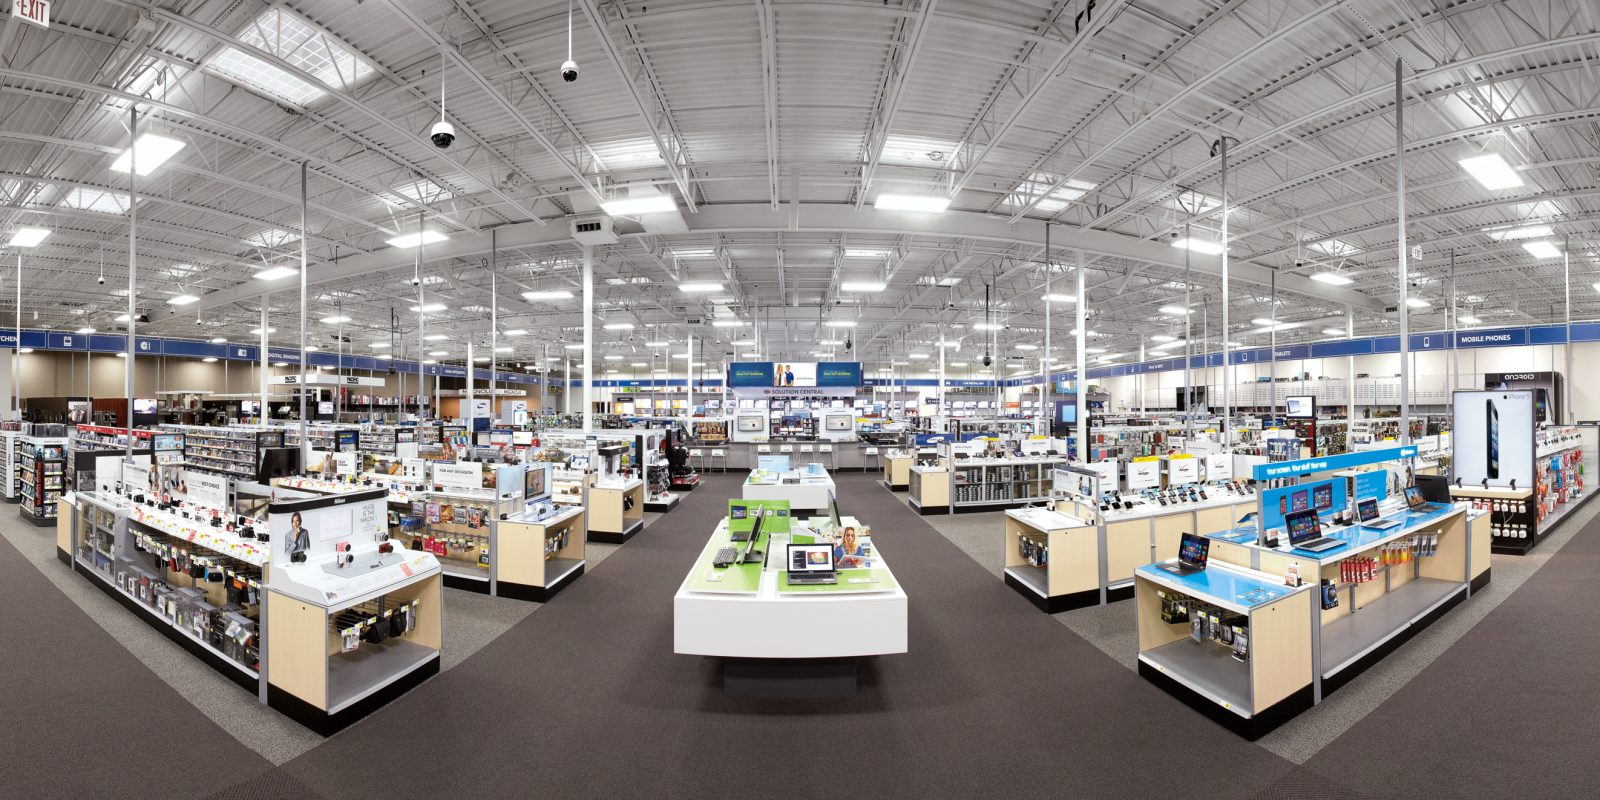 Best Buy offers a $10 credit when picking up $10+ orders in